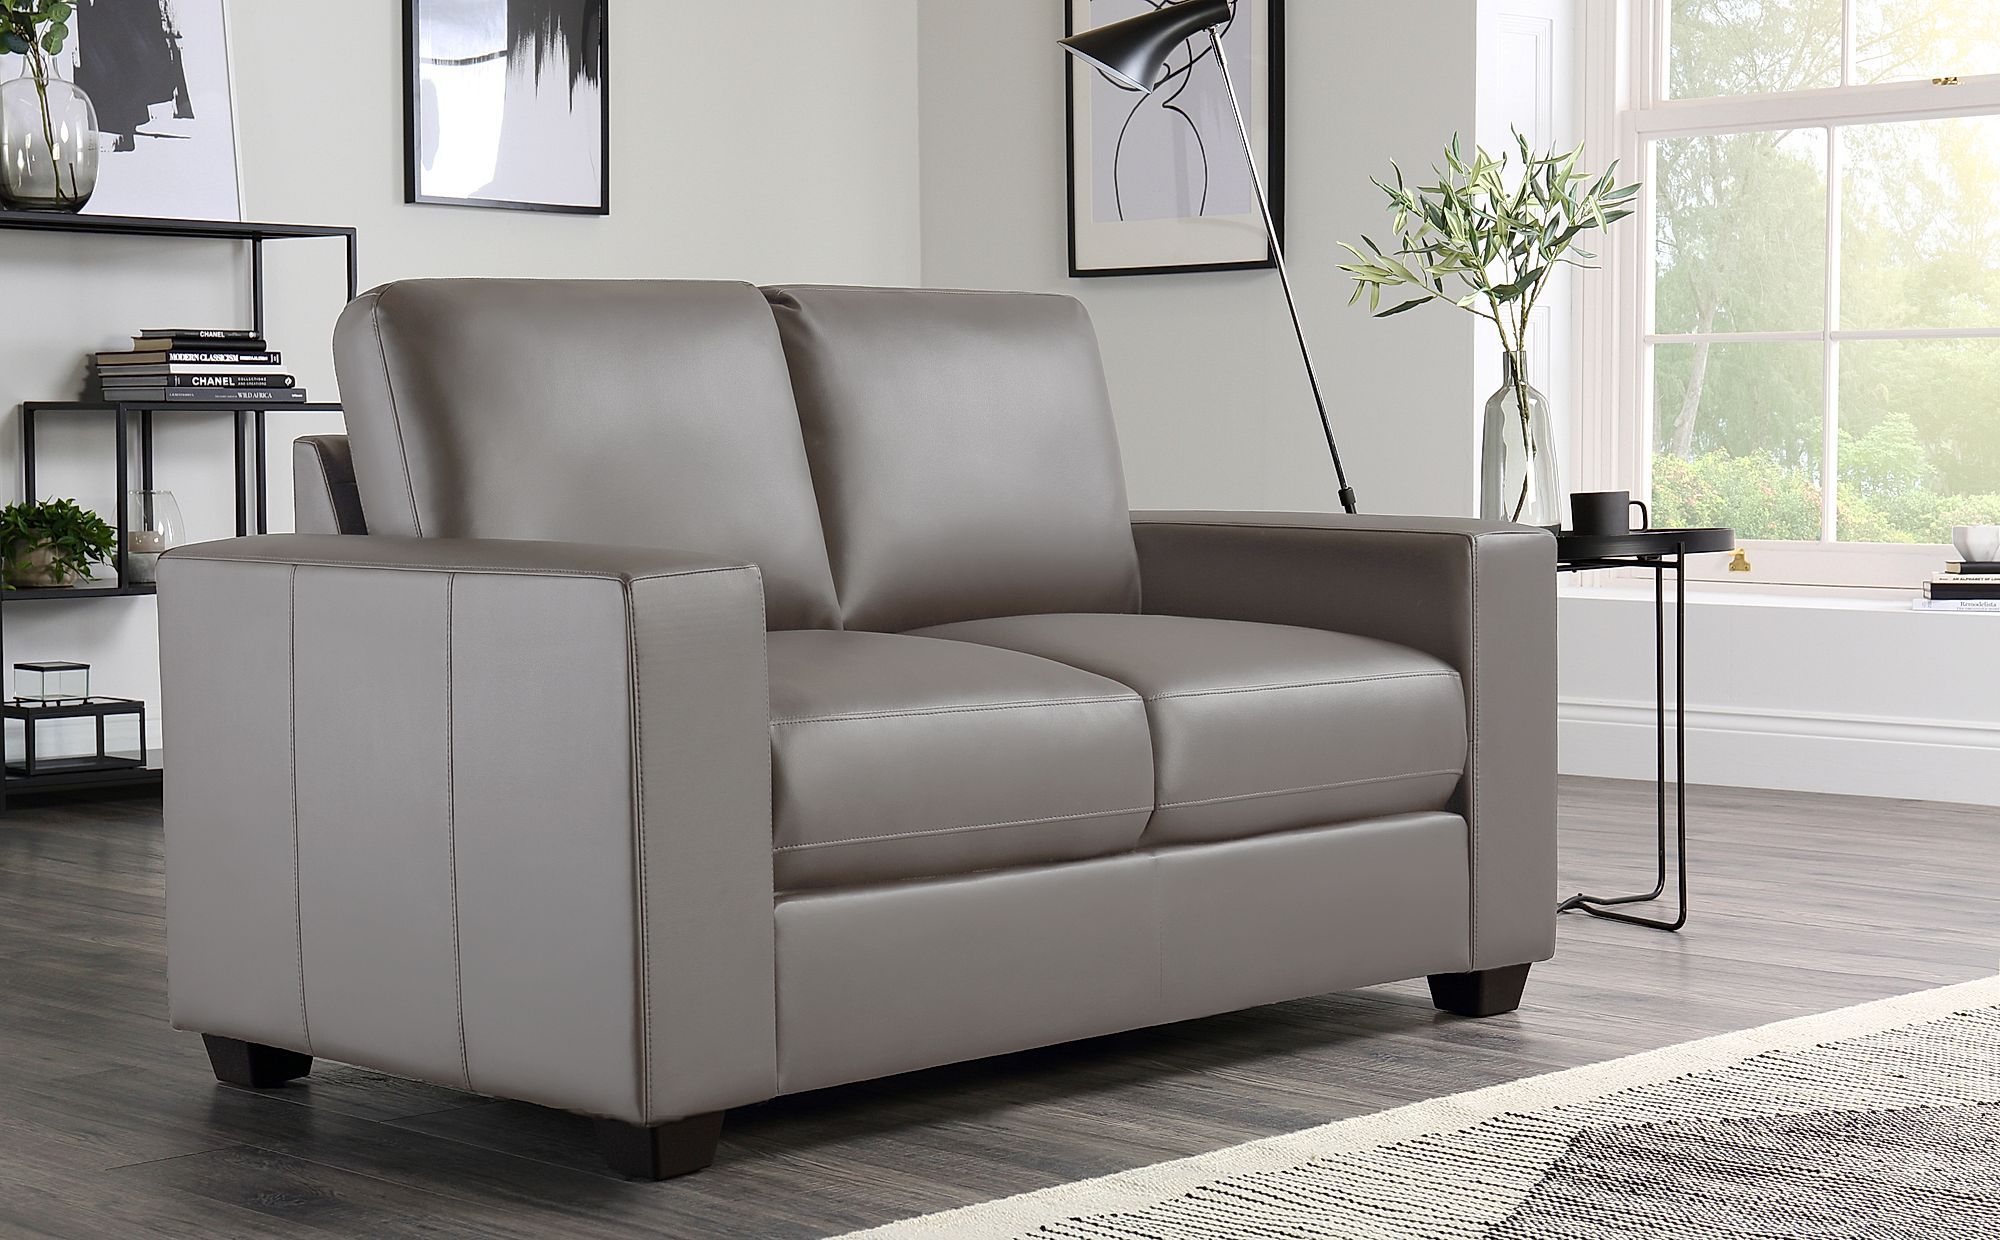 Mission Taupe Leather Sofa 3 2 Seater